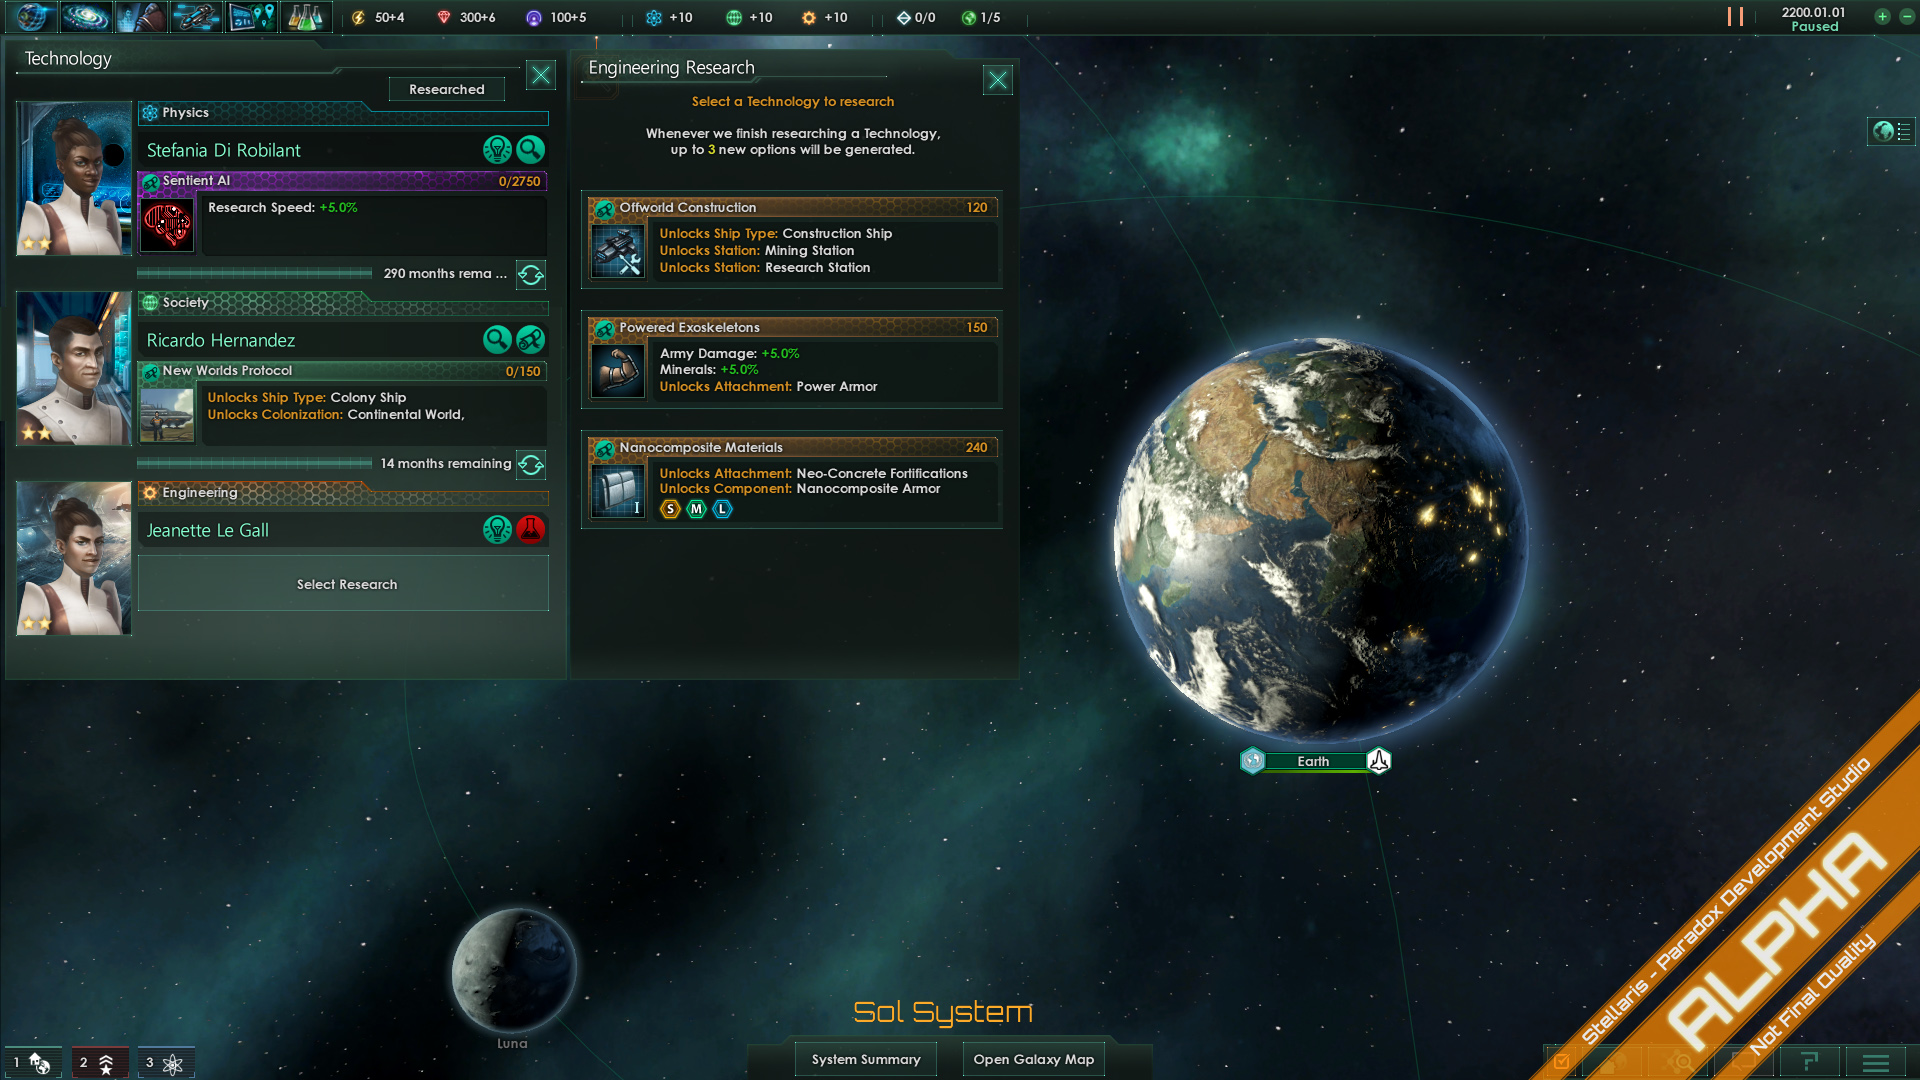 http://forumcontent.paradoxplaza.com/public/131850/stellaris_dev_diary_11_01_20151130_research_view.jpg